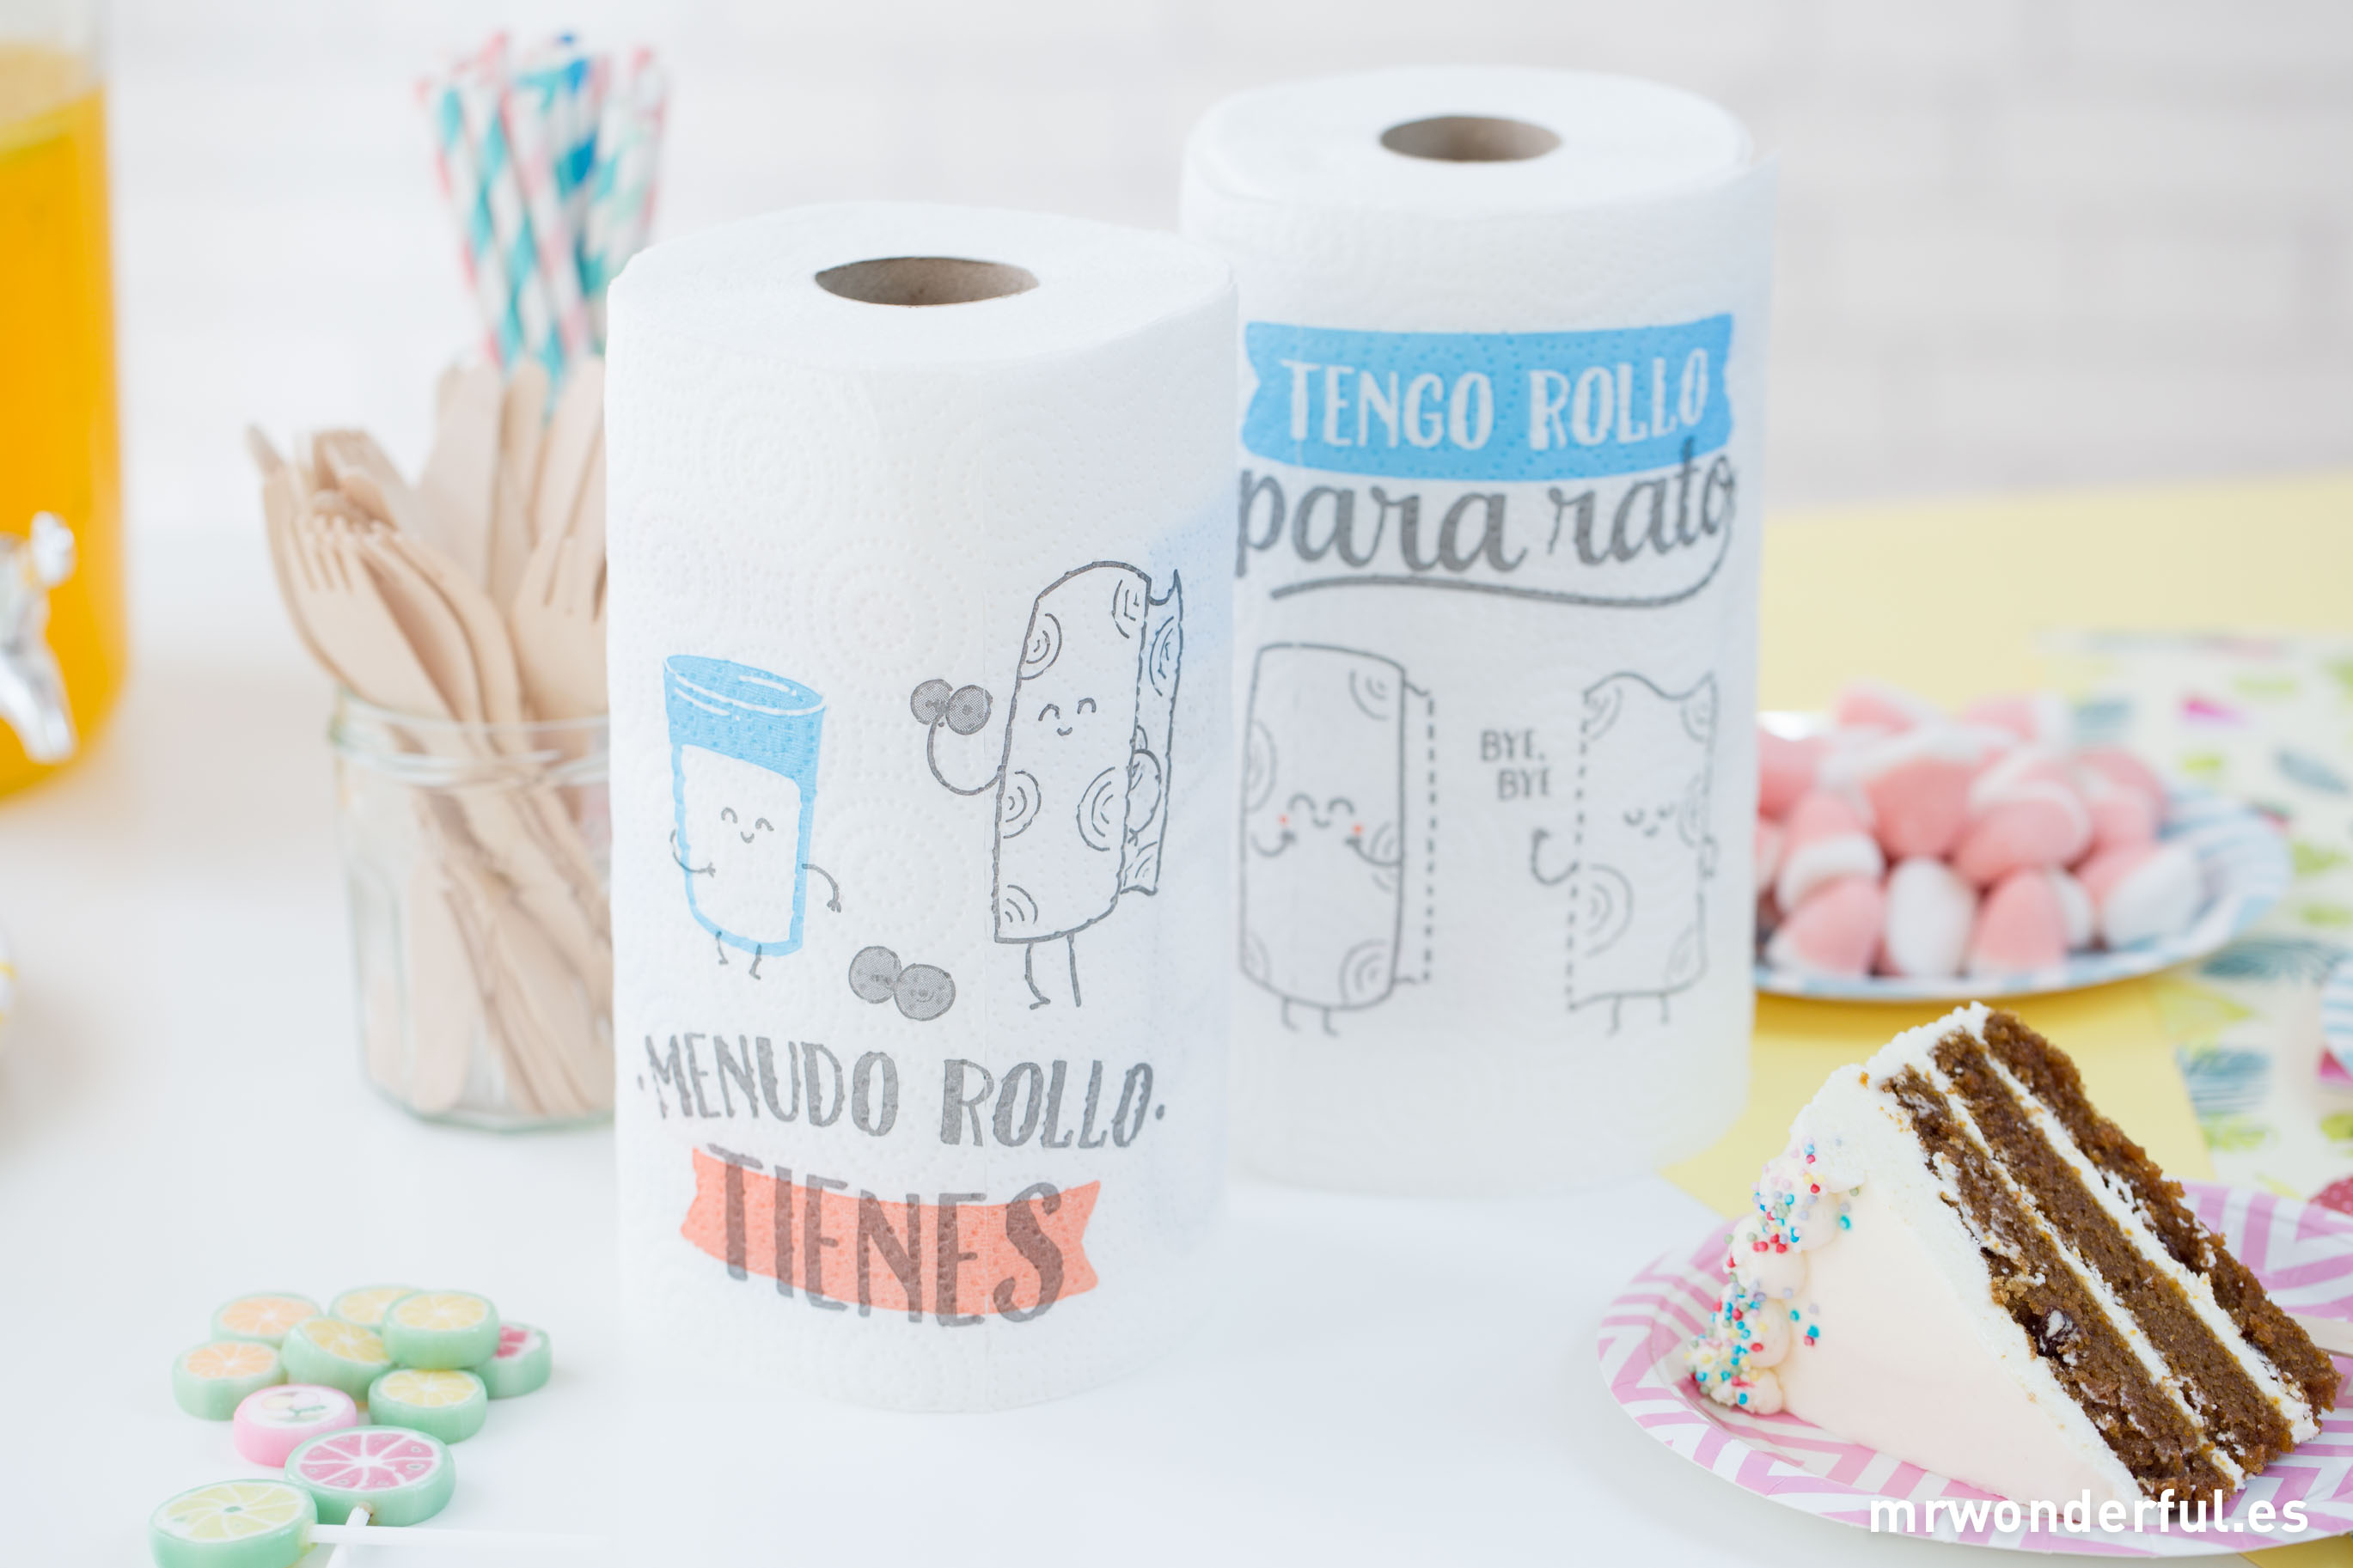 mrwonderful_colohogar-2015-papel-41